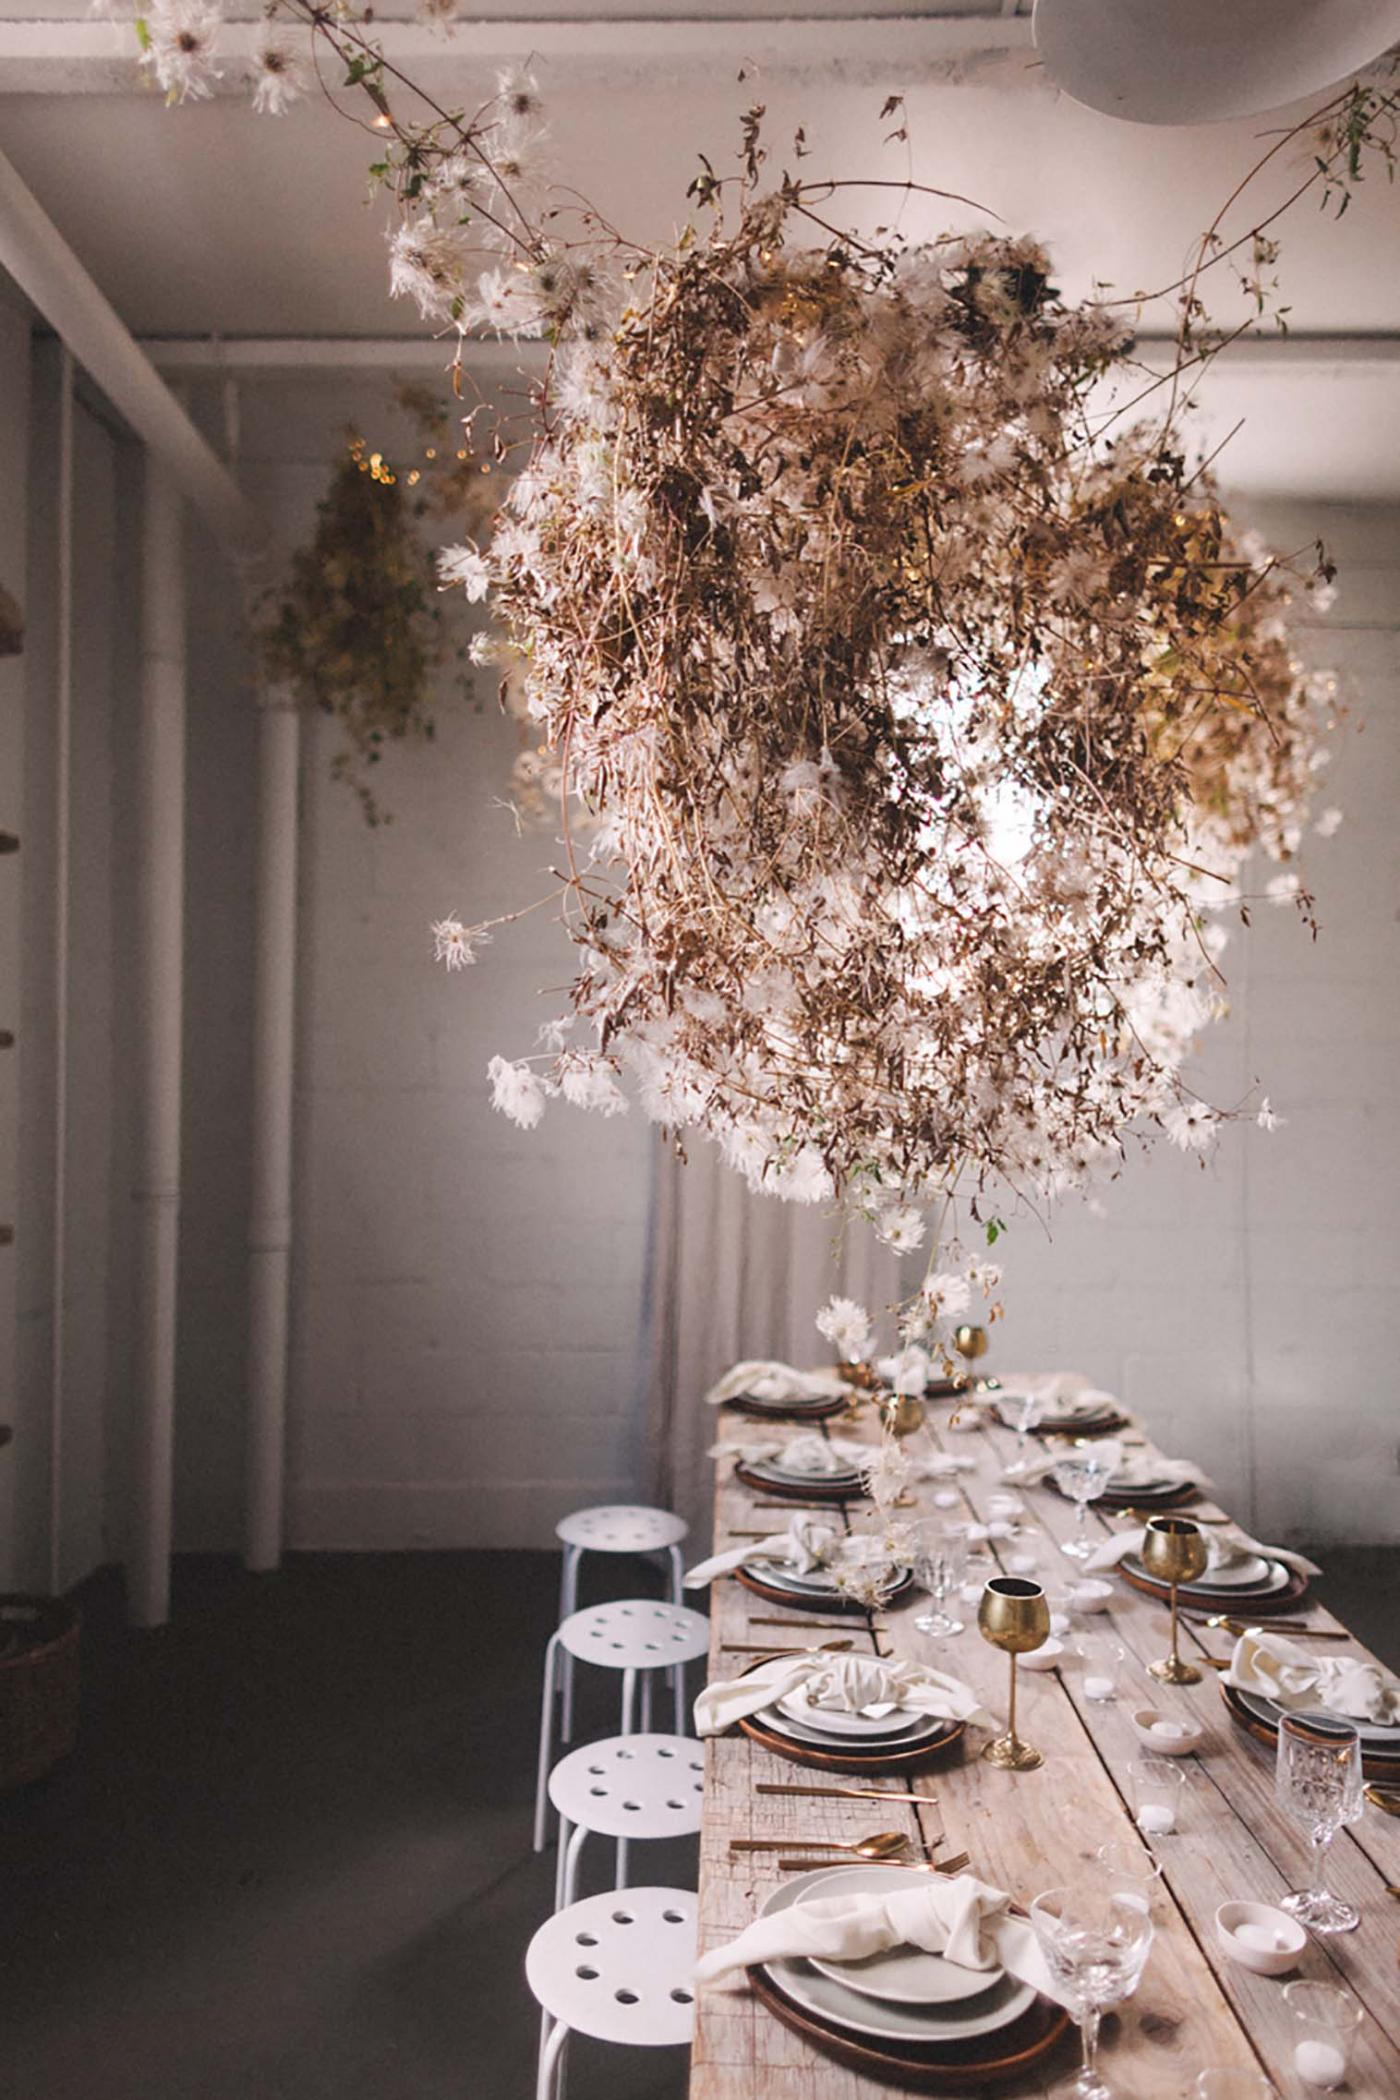 Places To Have Baby Shower Near Me : places, shower, Gorgeous, Floral, Installation, Breaking, Internet